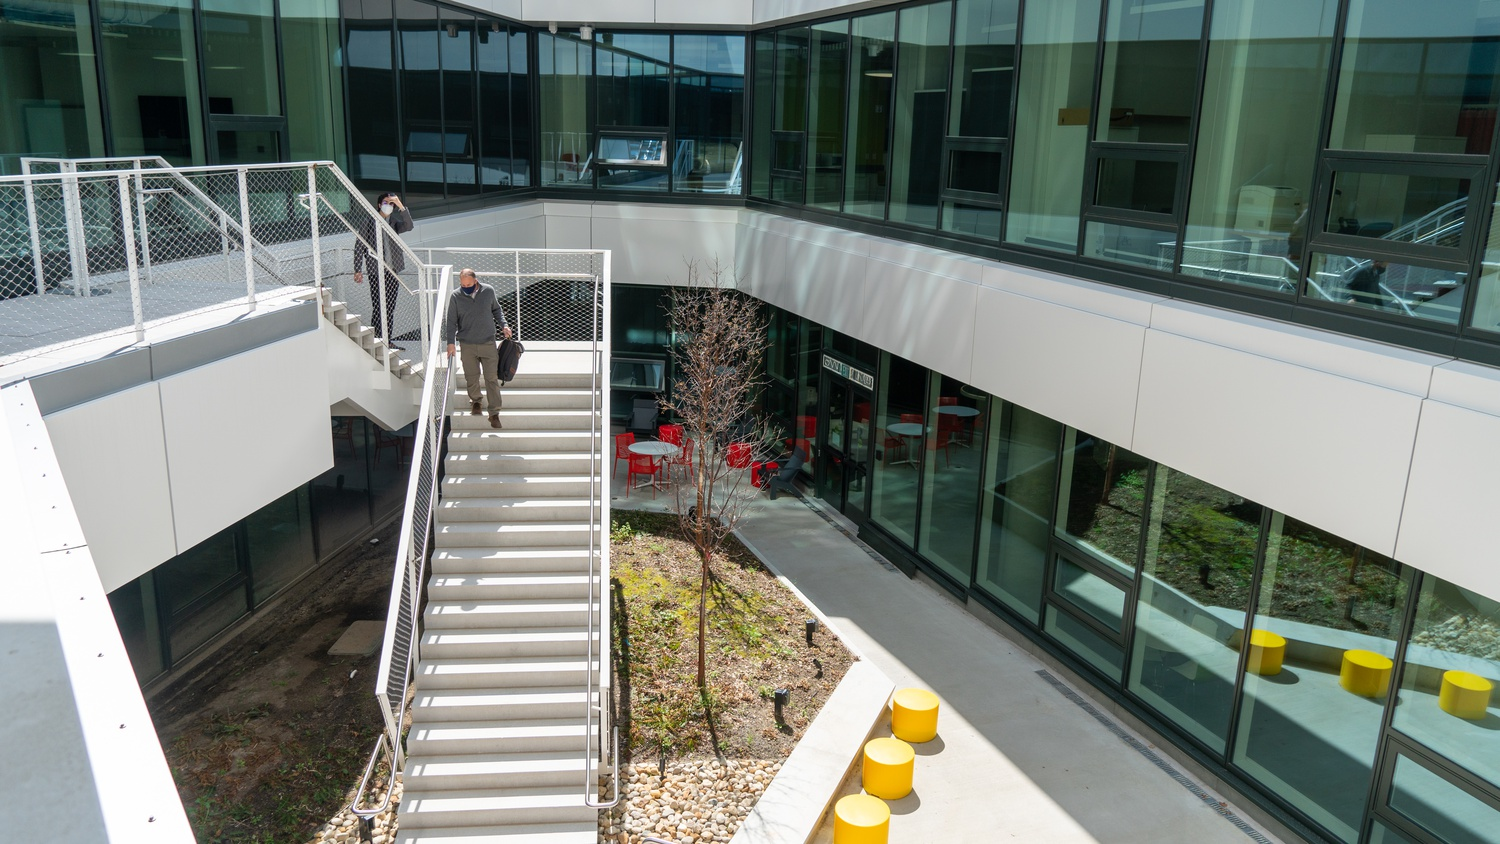 Similar to the sunken tree of Pusey Library, the SEC features a subterranean outdoor courtyard that opens up to surface level.